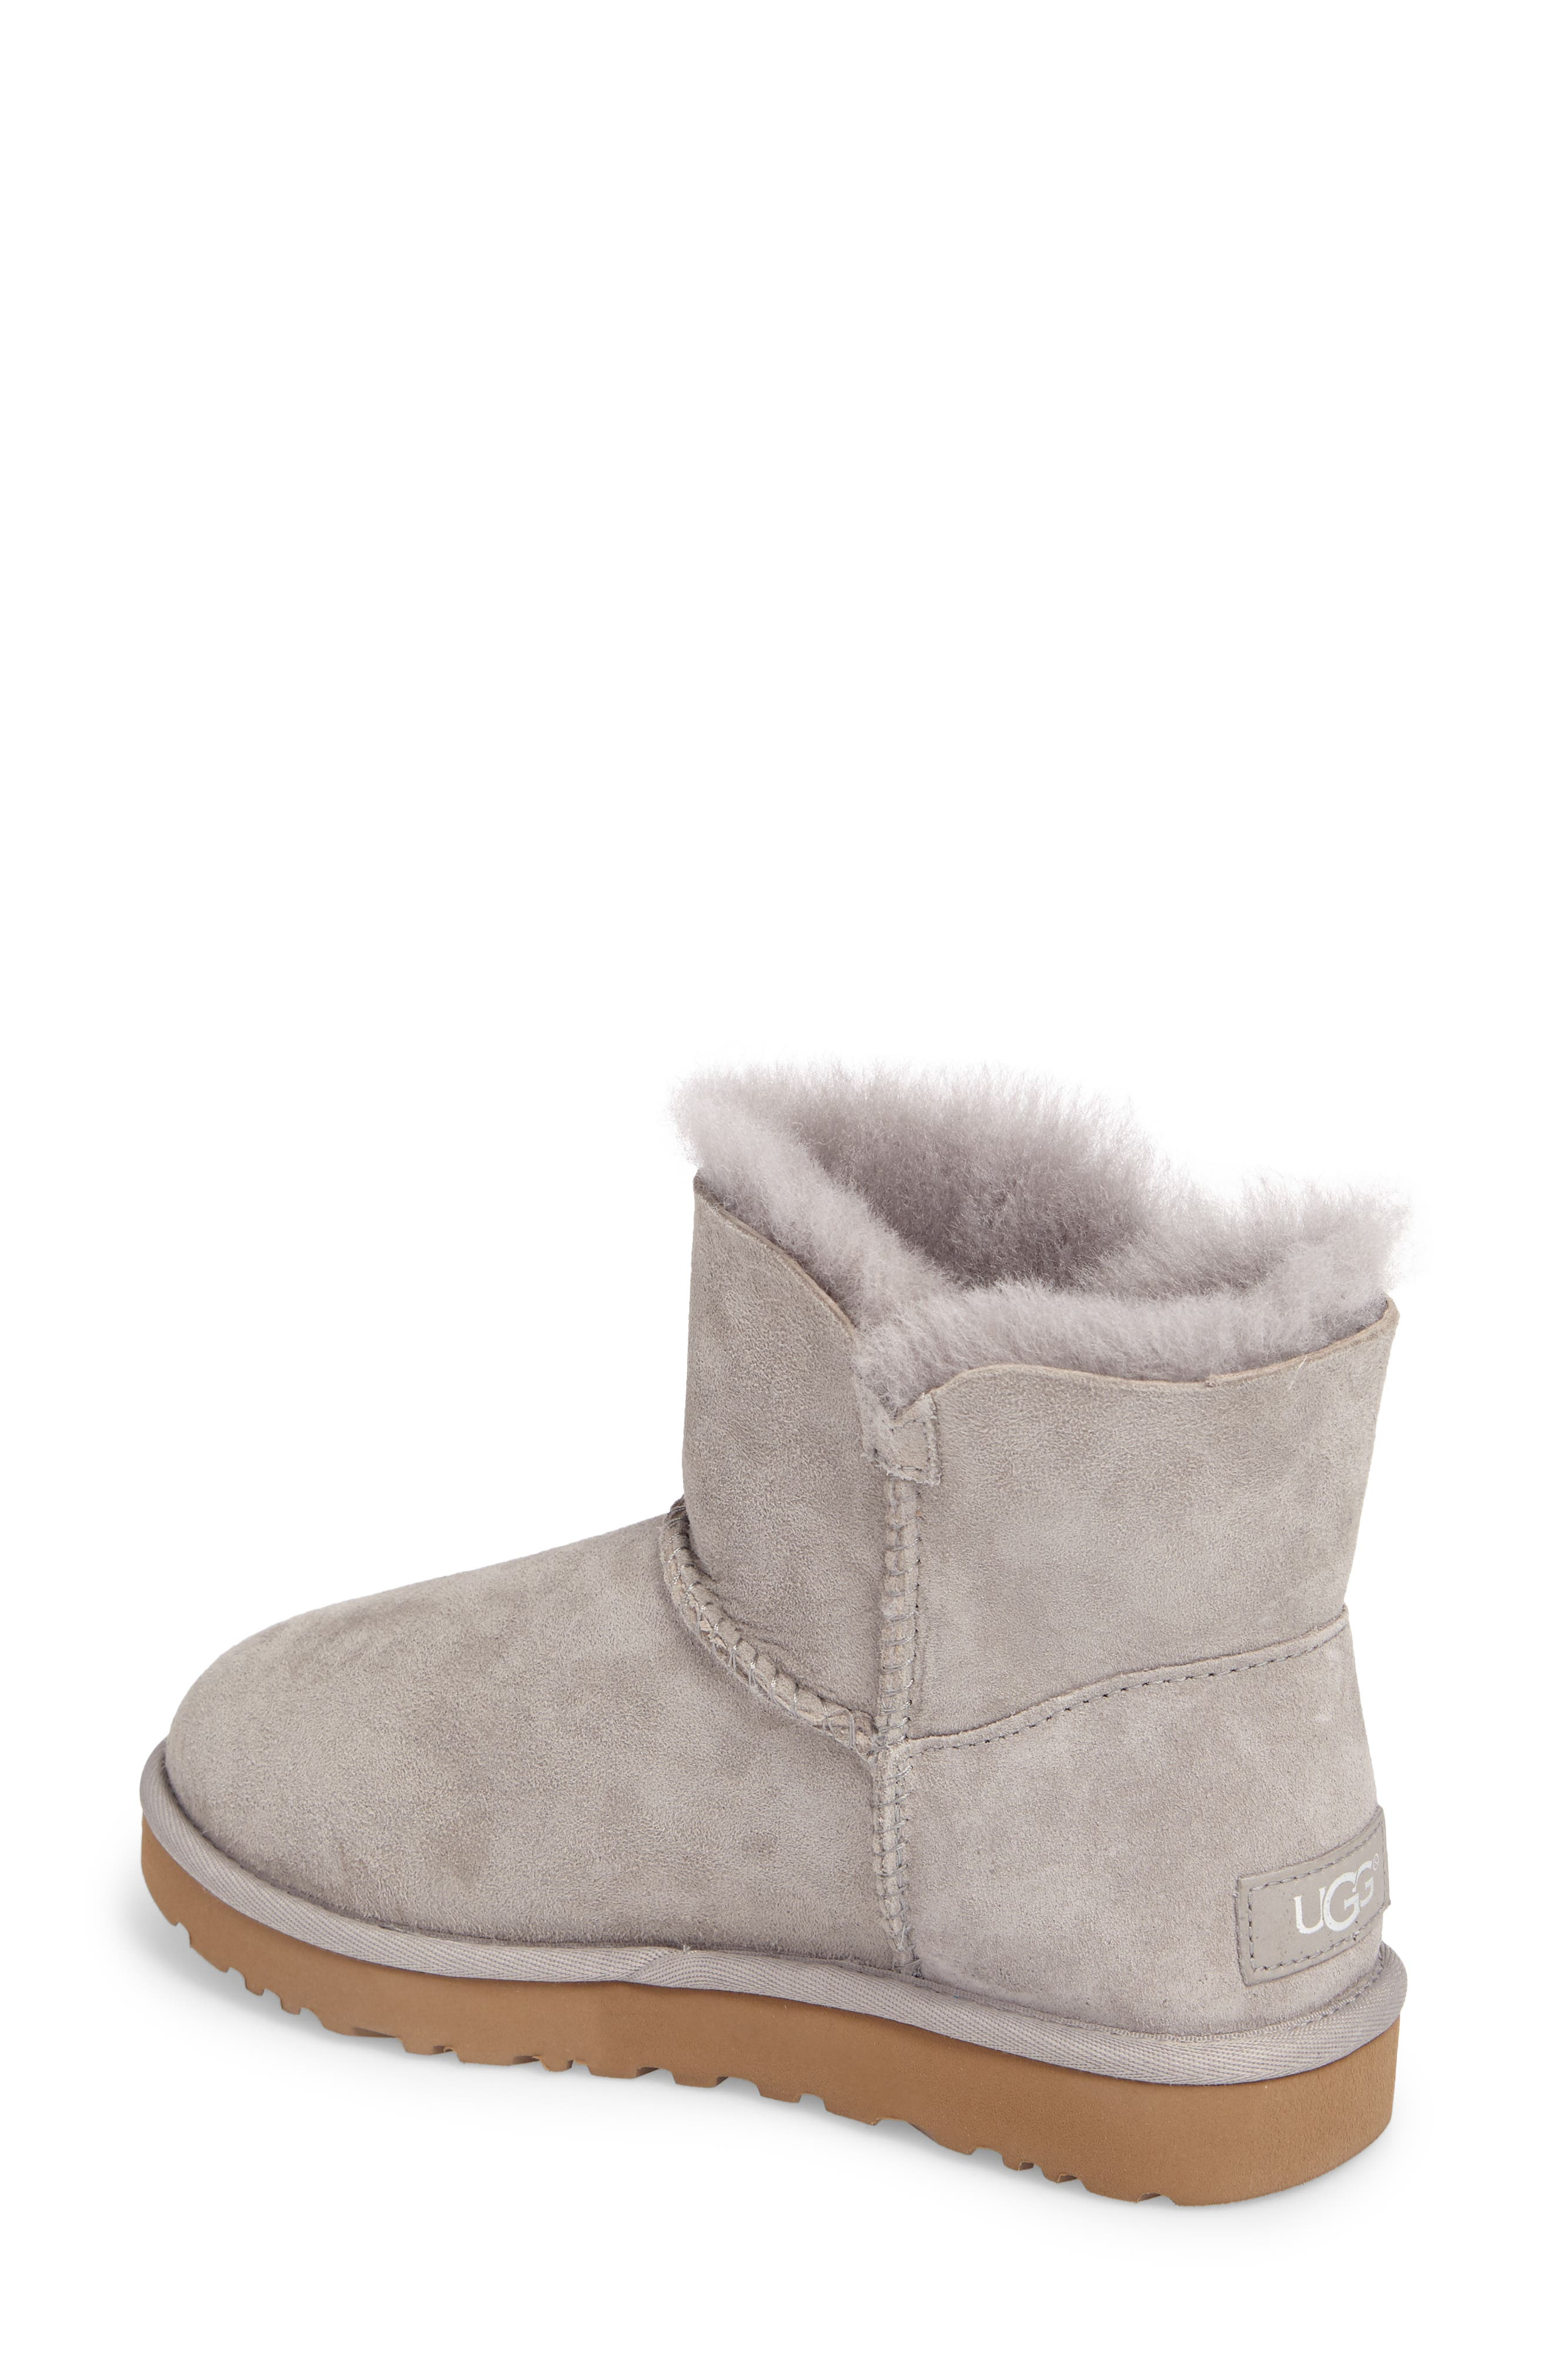 Bailey Petal Genuine Shearling Lined Mini Boot,                             Alternate thumbnail 5, color,